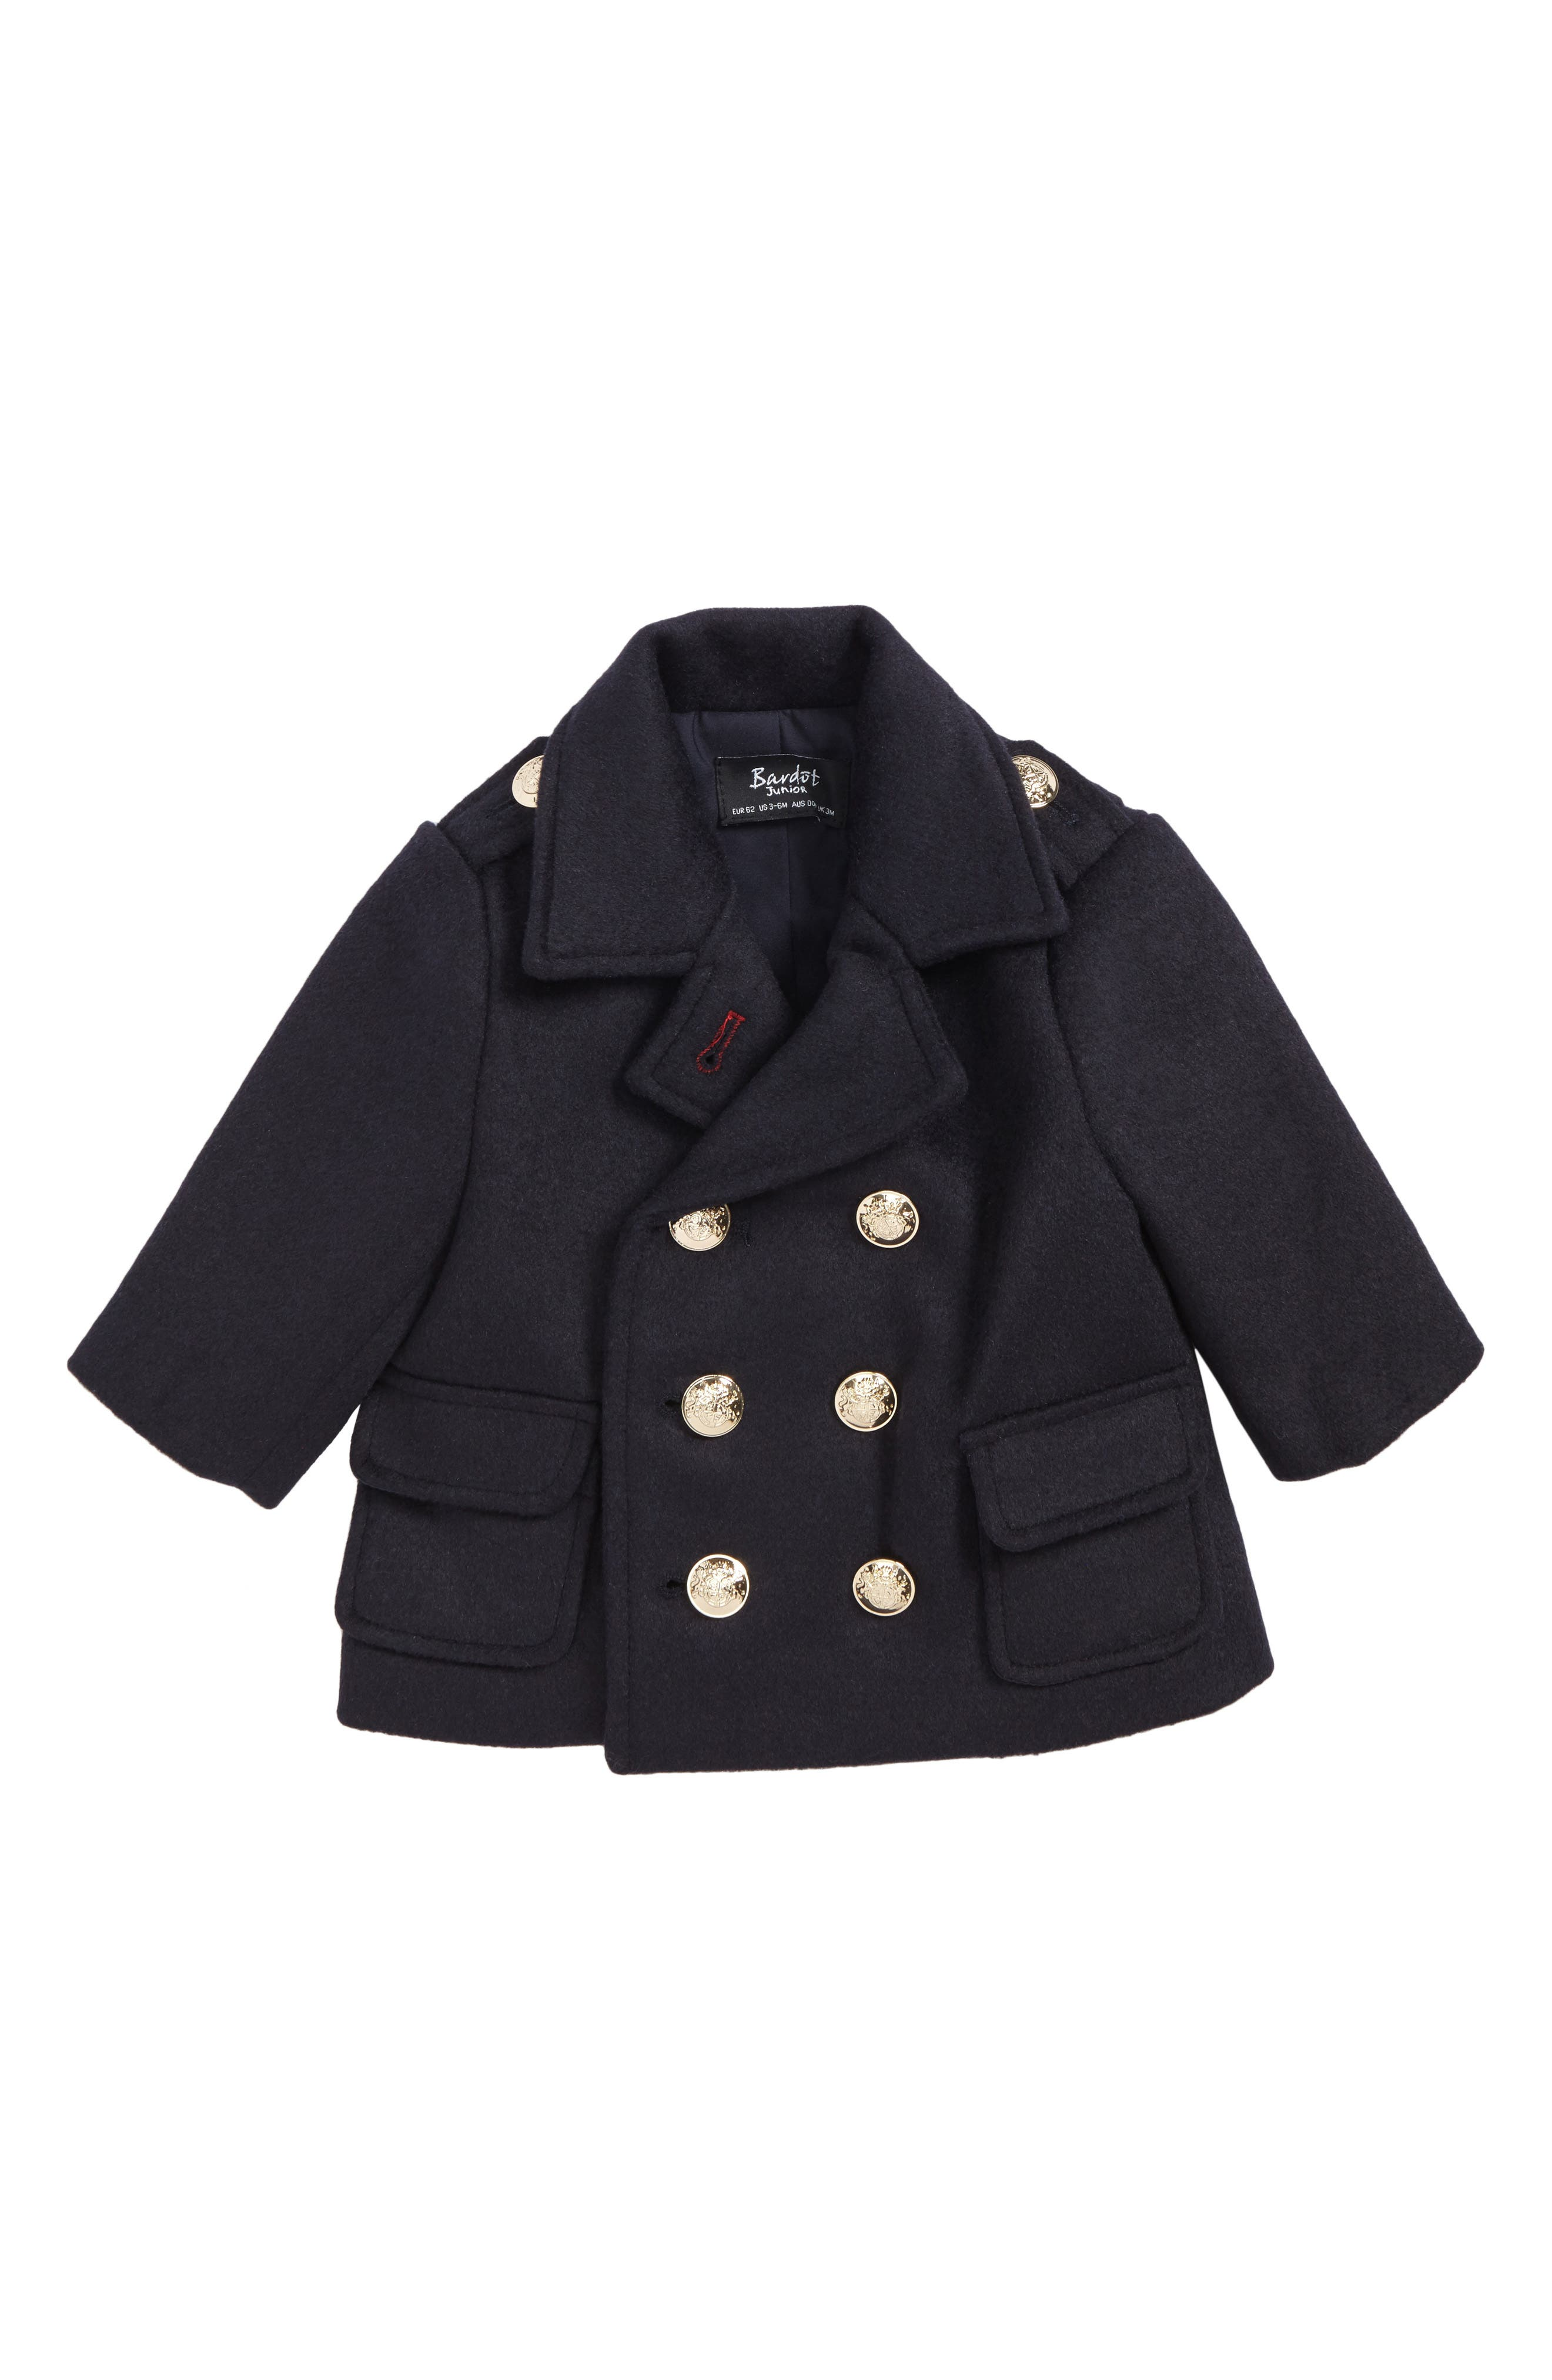 Junior Bardot Jude Double Breasted Peacoat (Baby Boys & Toddler Boys)